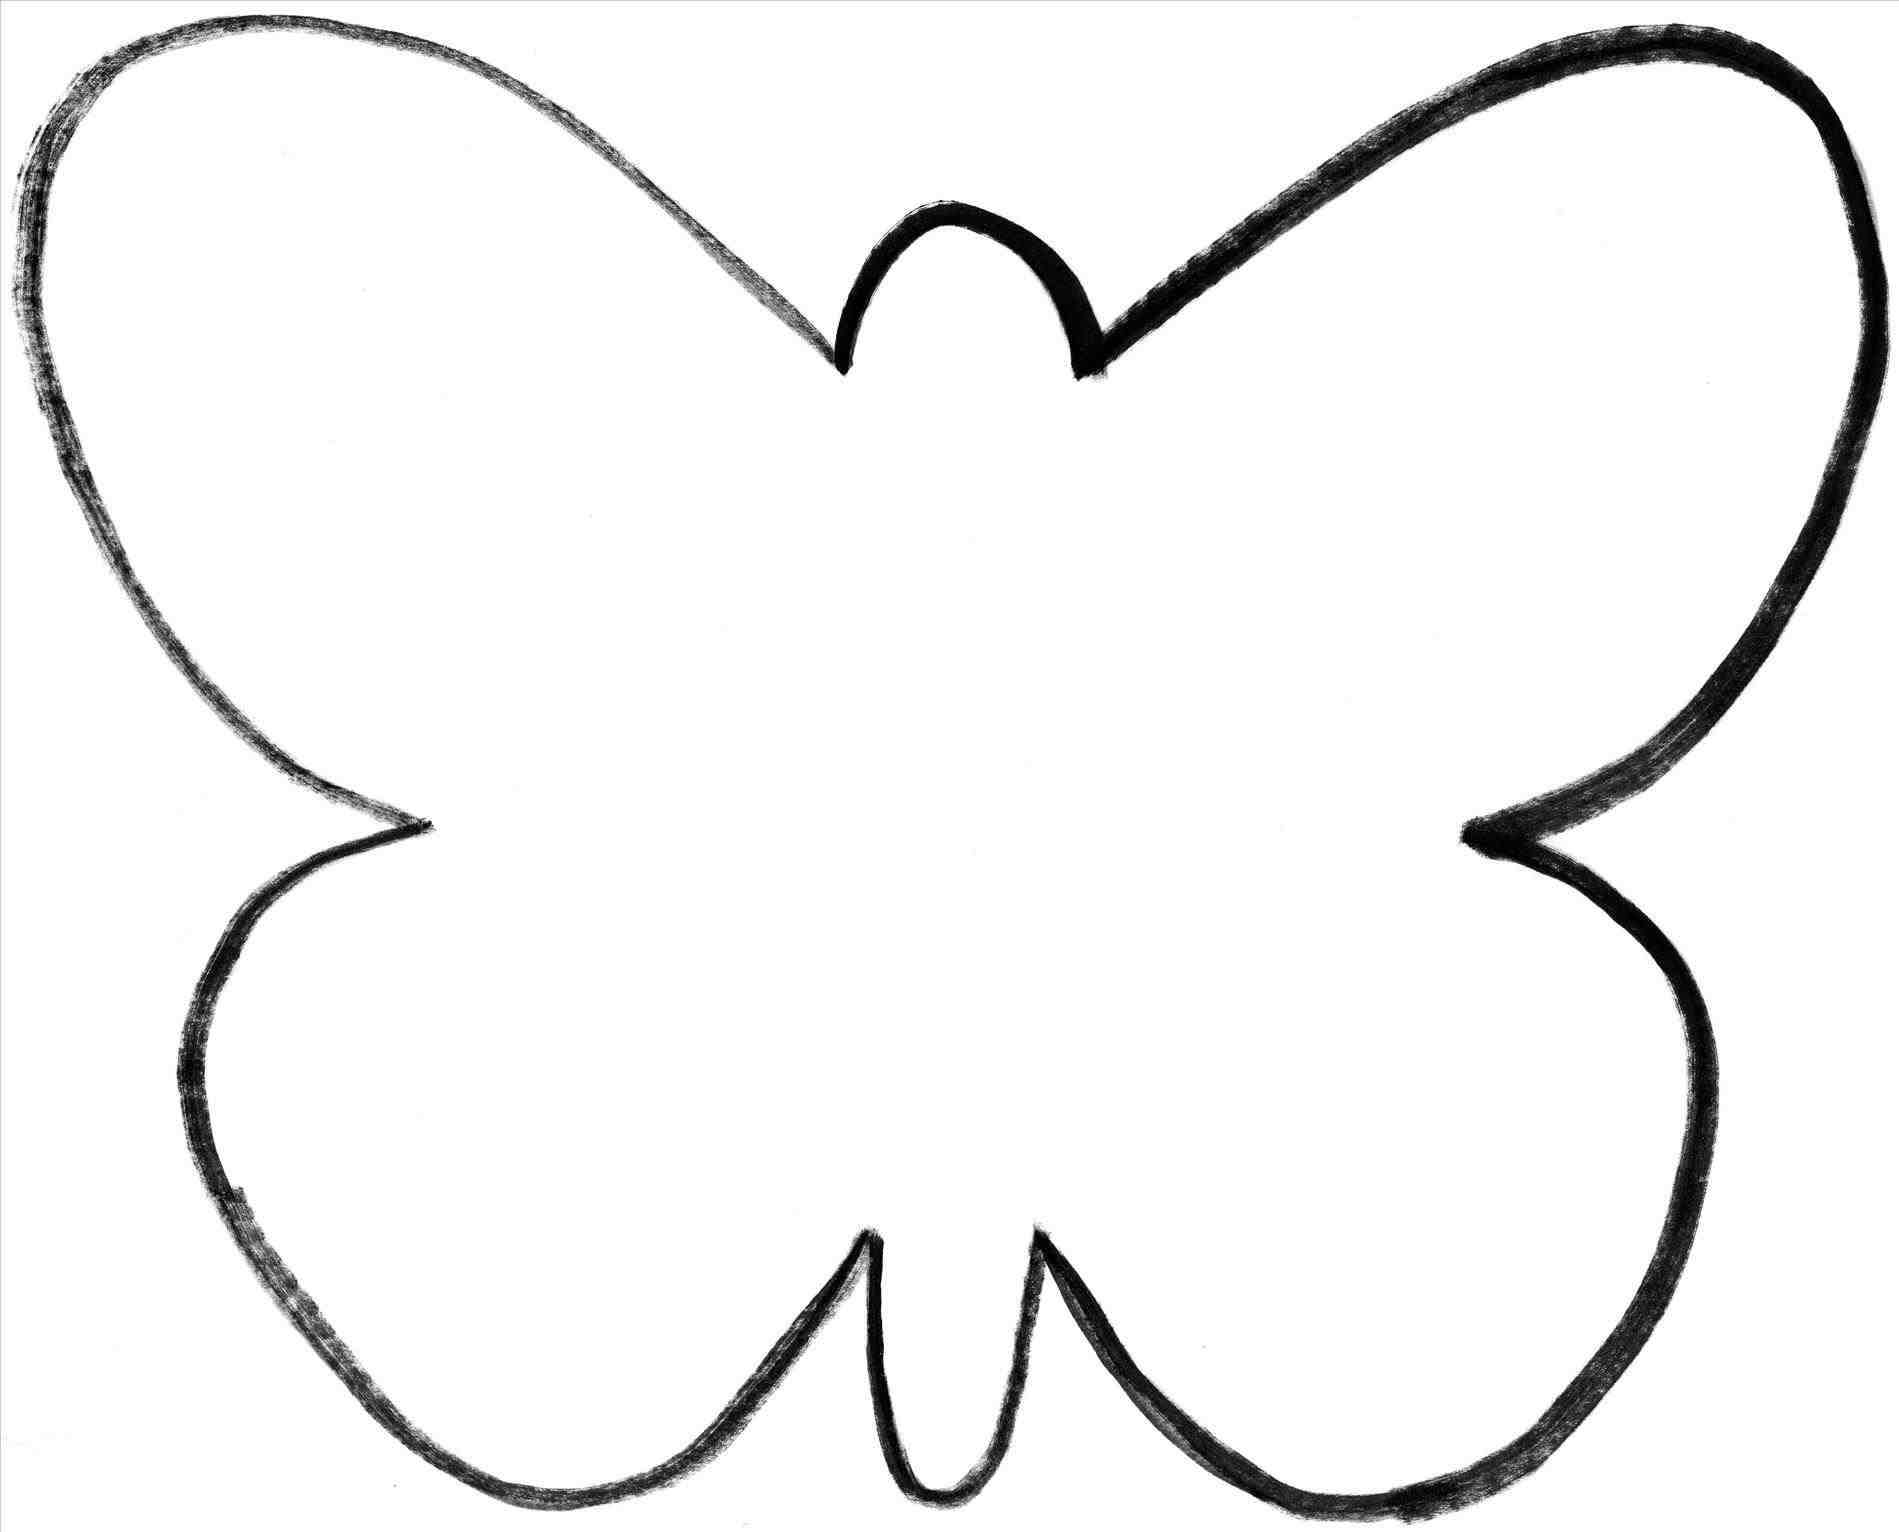 Butterfly Silhouette Template At Getdrawings